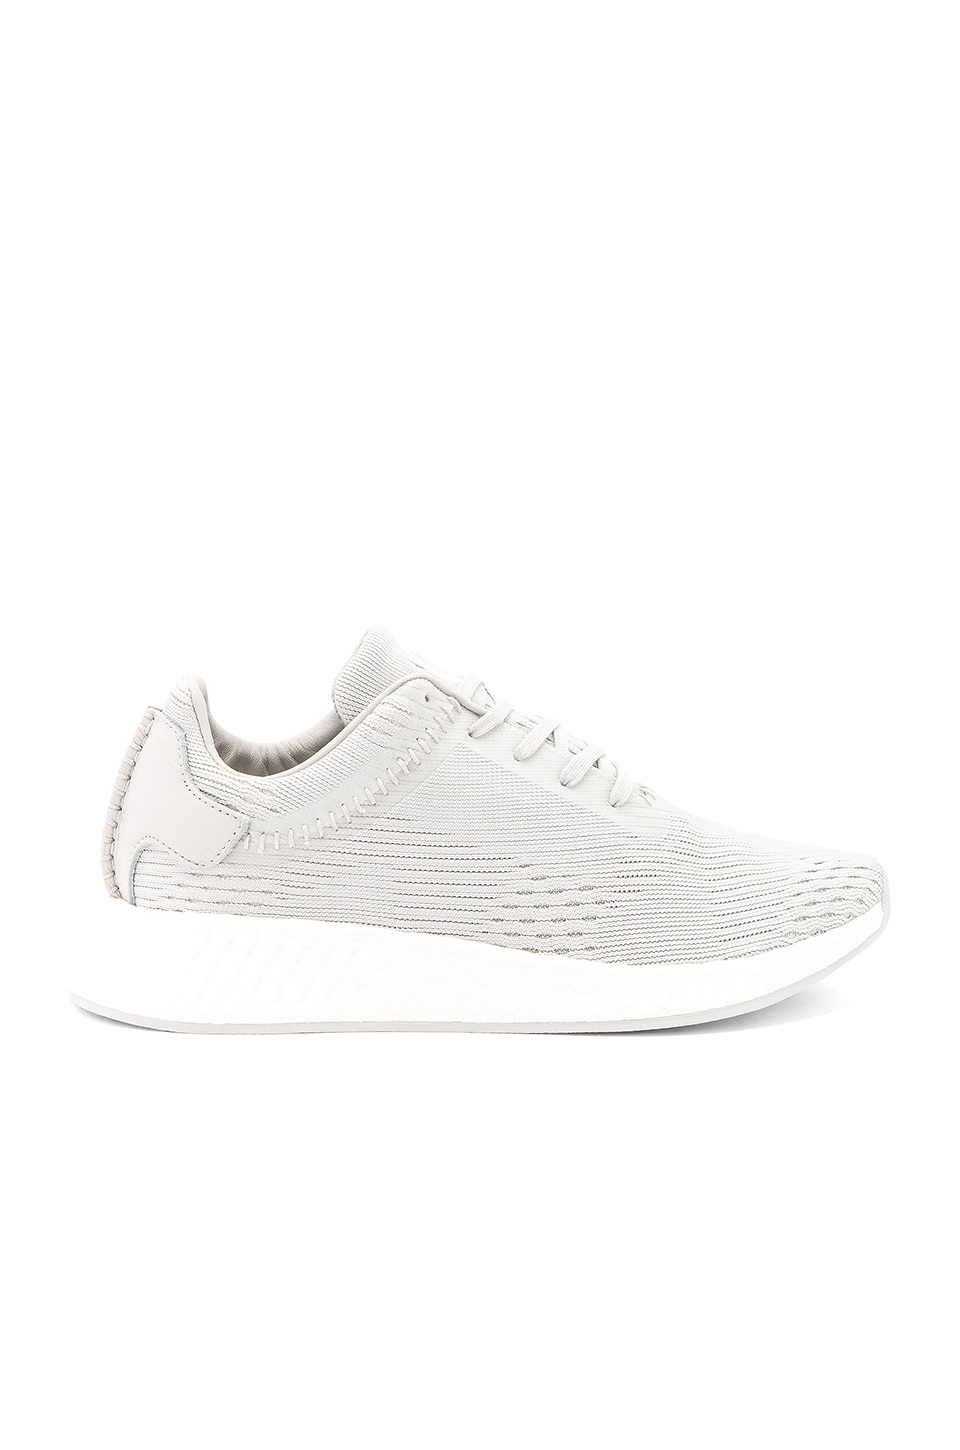 Primeknit by adidas by wings + horns